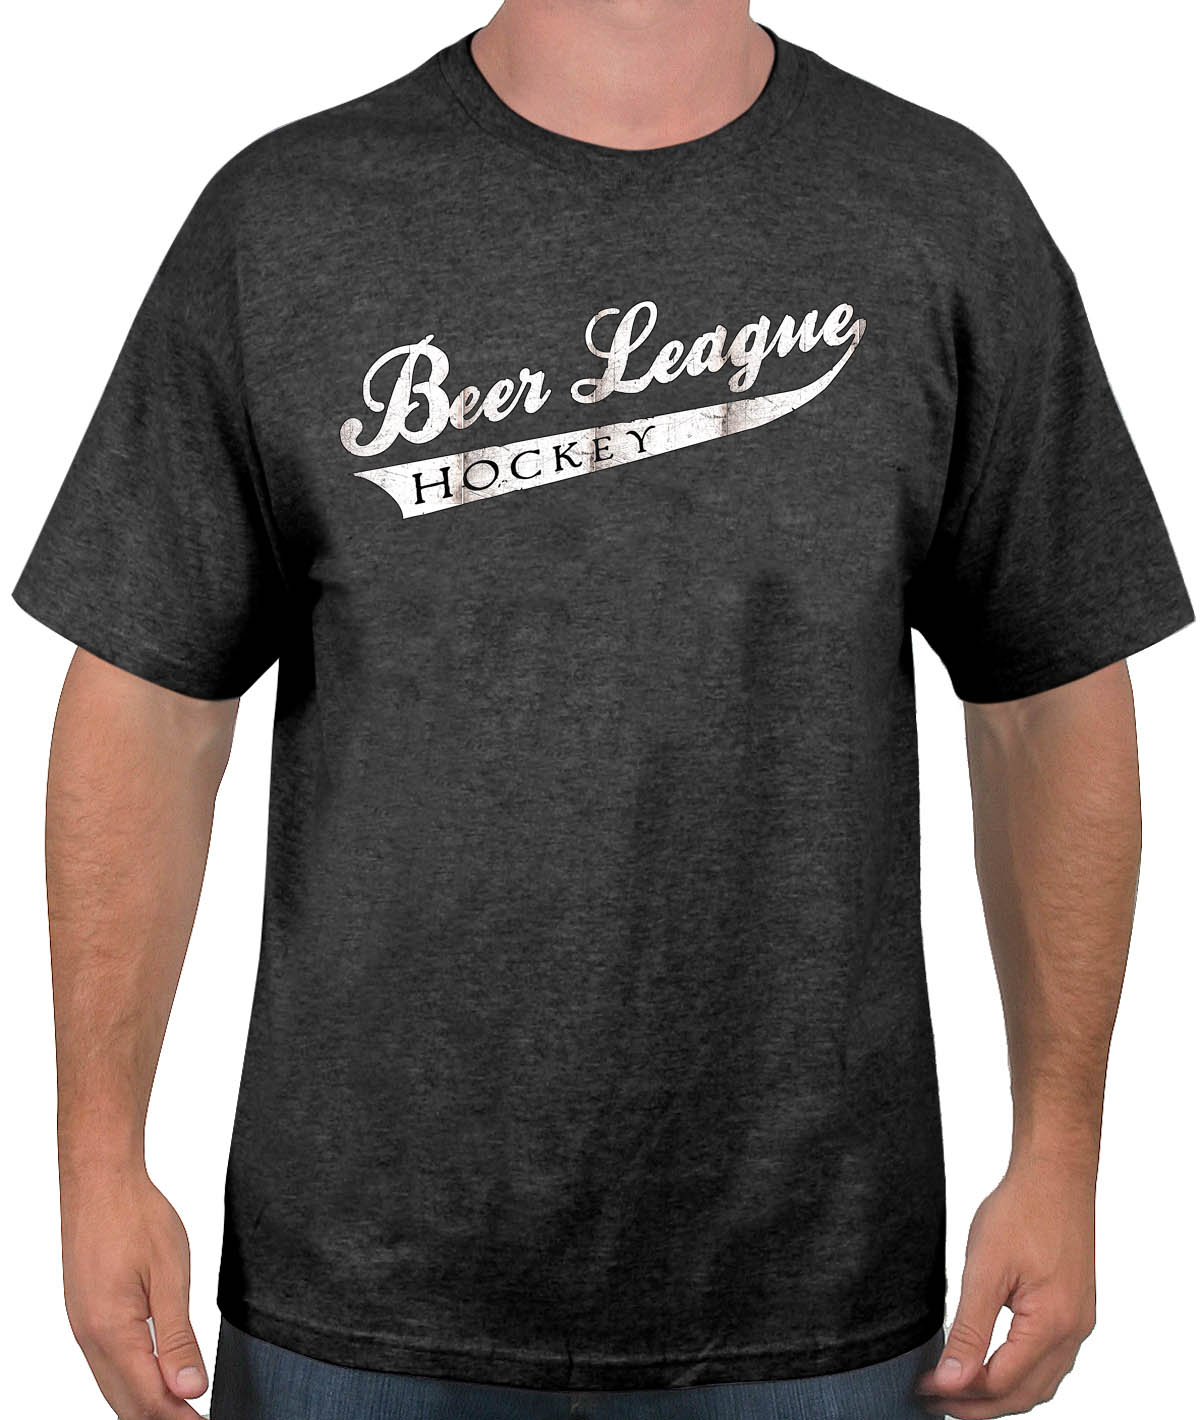 Beer League Hockey... - What people think I do, what I ...   Beer League Hockey Sayings